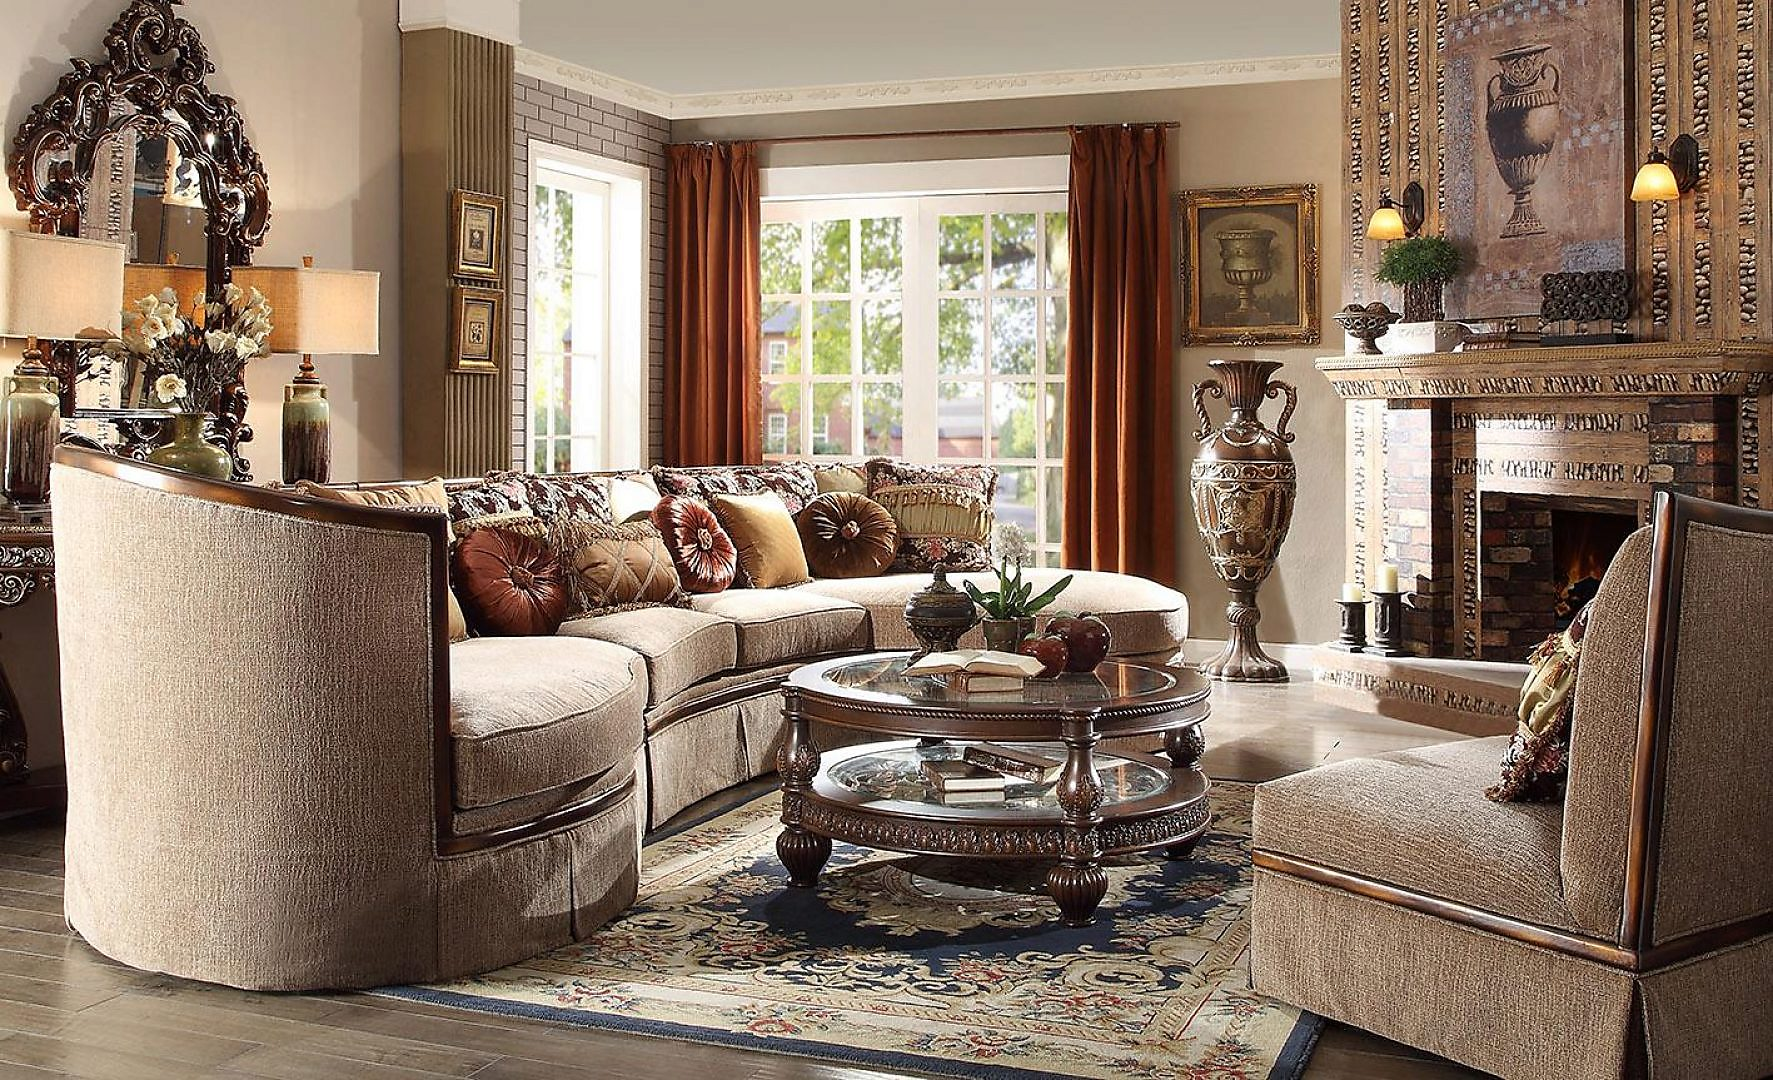 Traditional HD-1627 Sectional Sofa Set 4Pcs by Homey Design